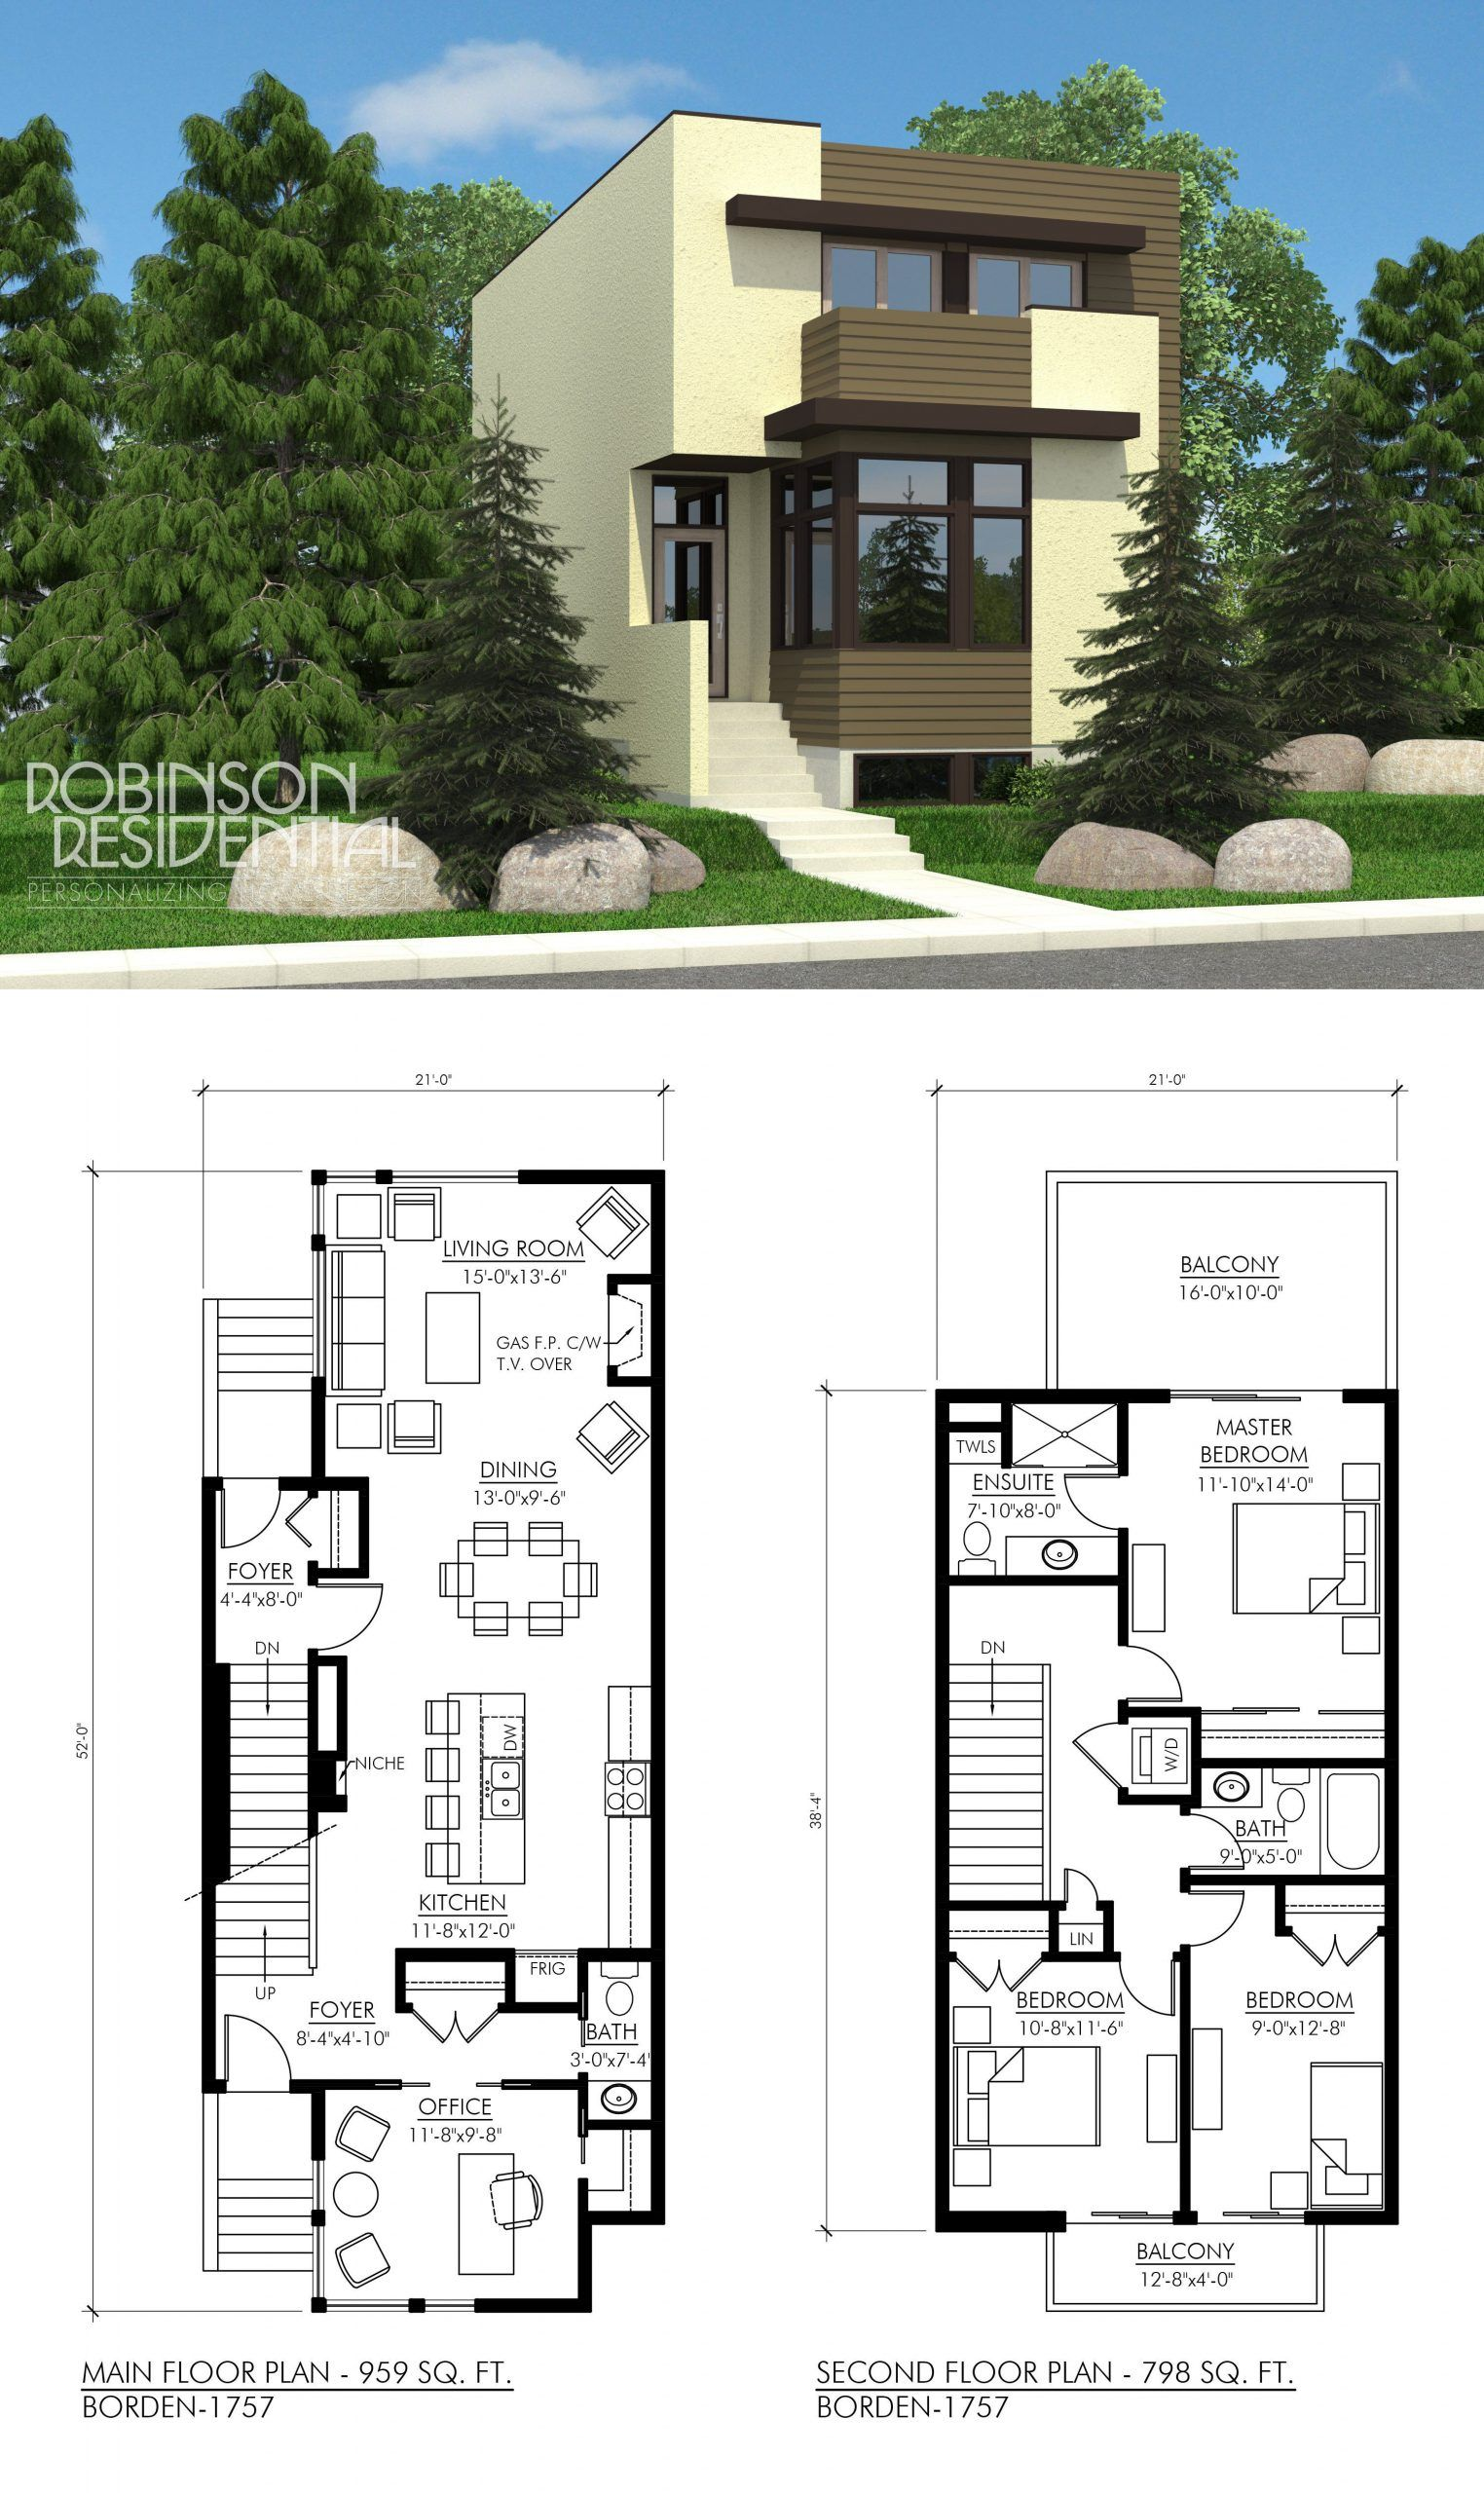 House Plans With Lots Of Windows 2020 Narrow Lot House Plans Narrow House Plans Narrow Lot House